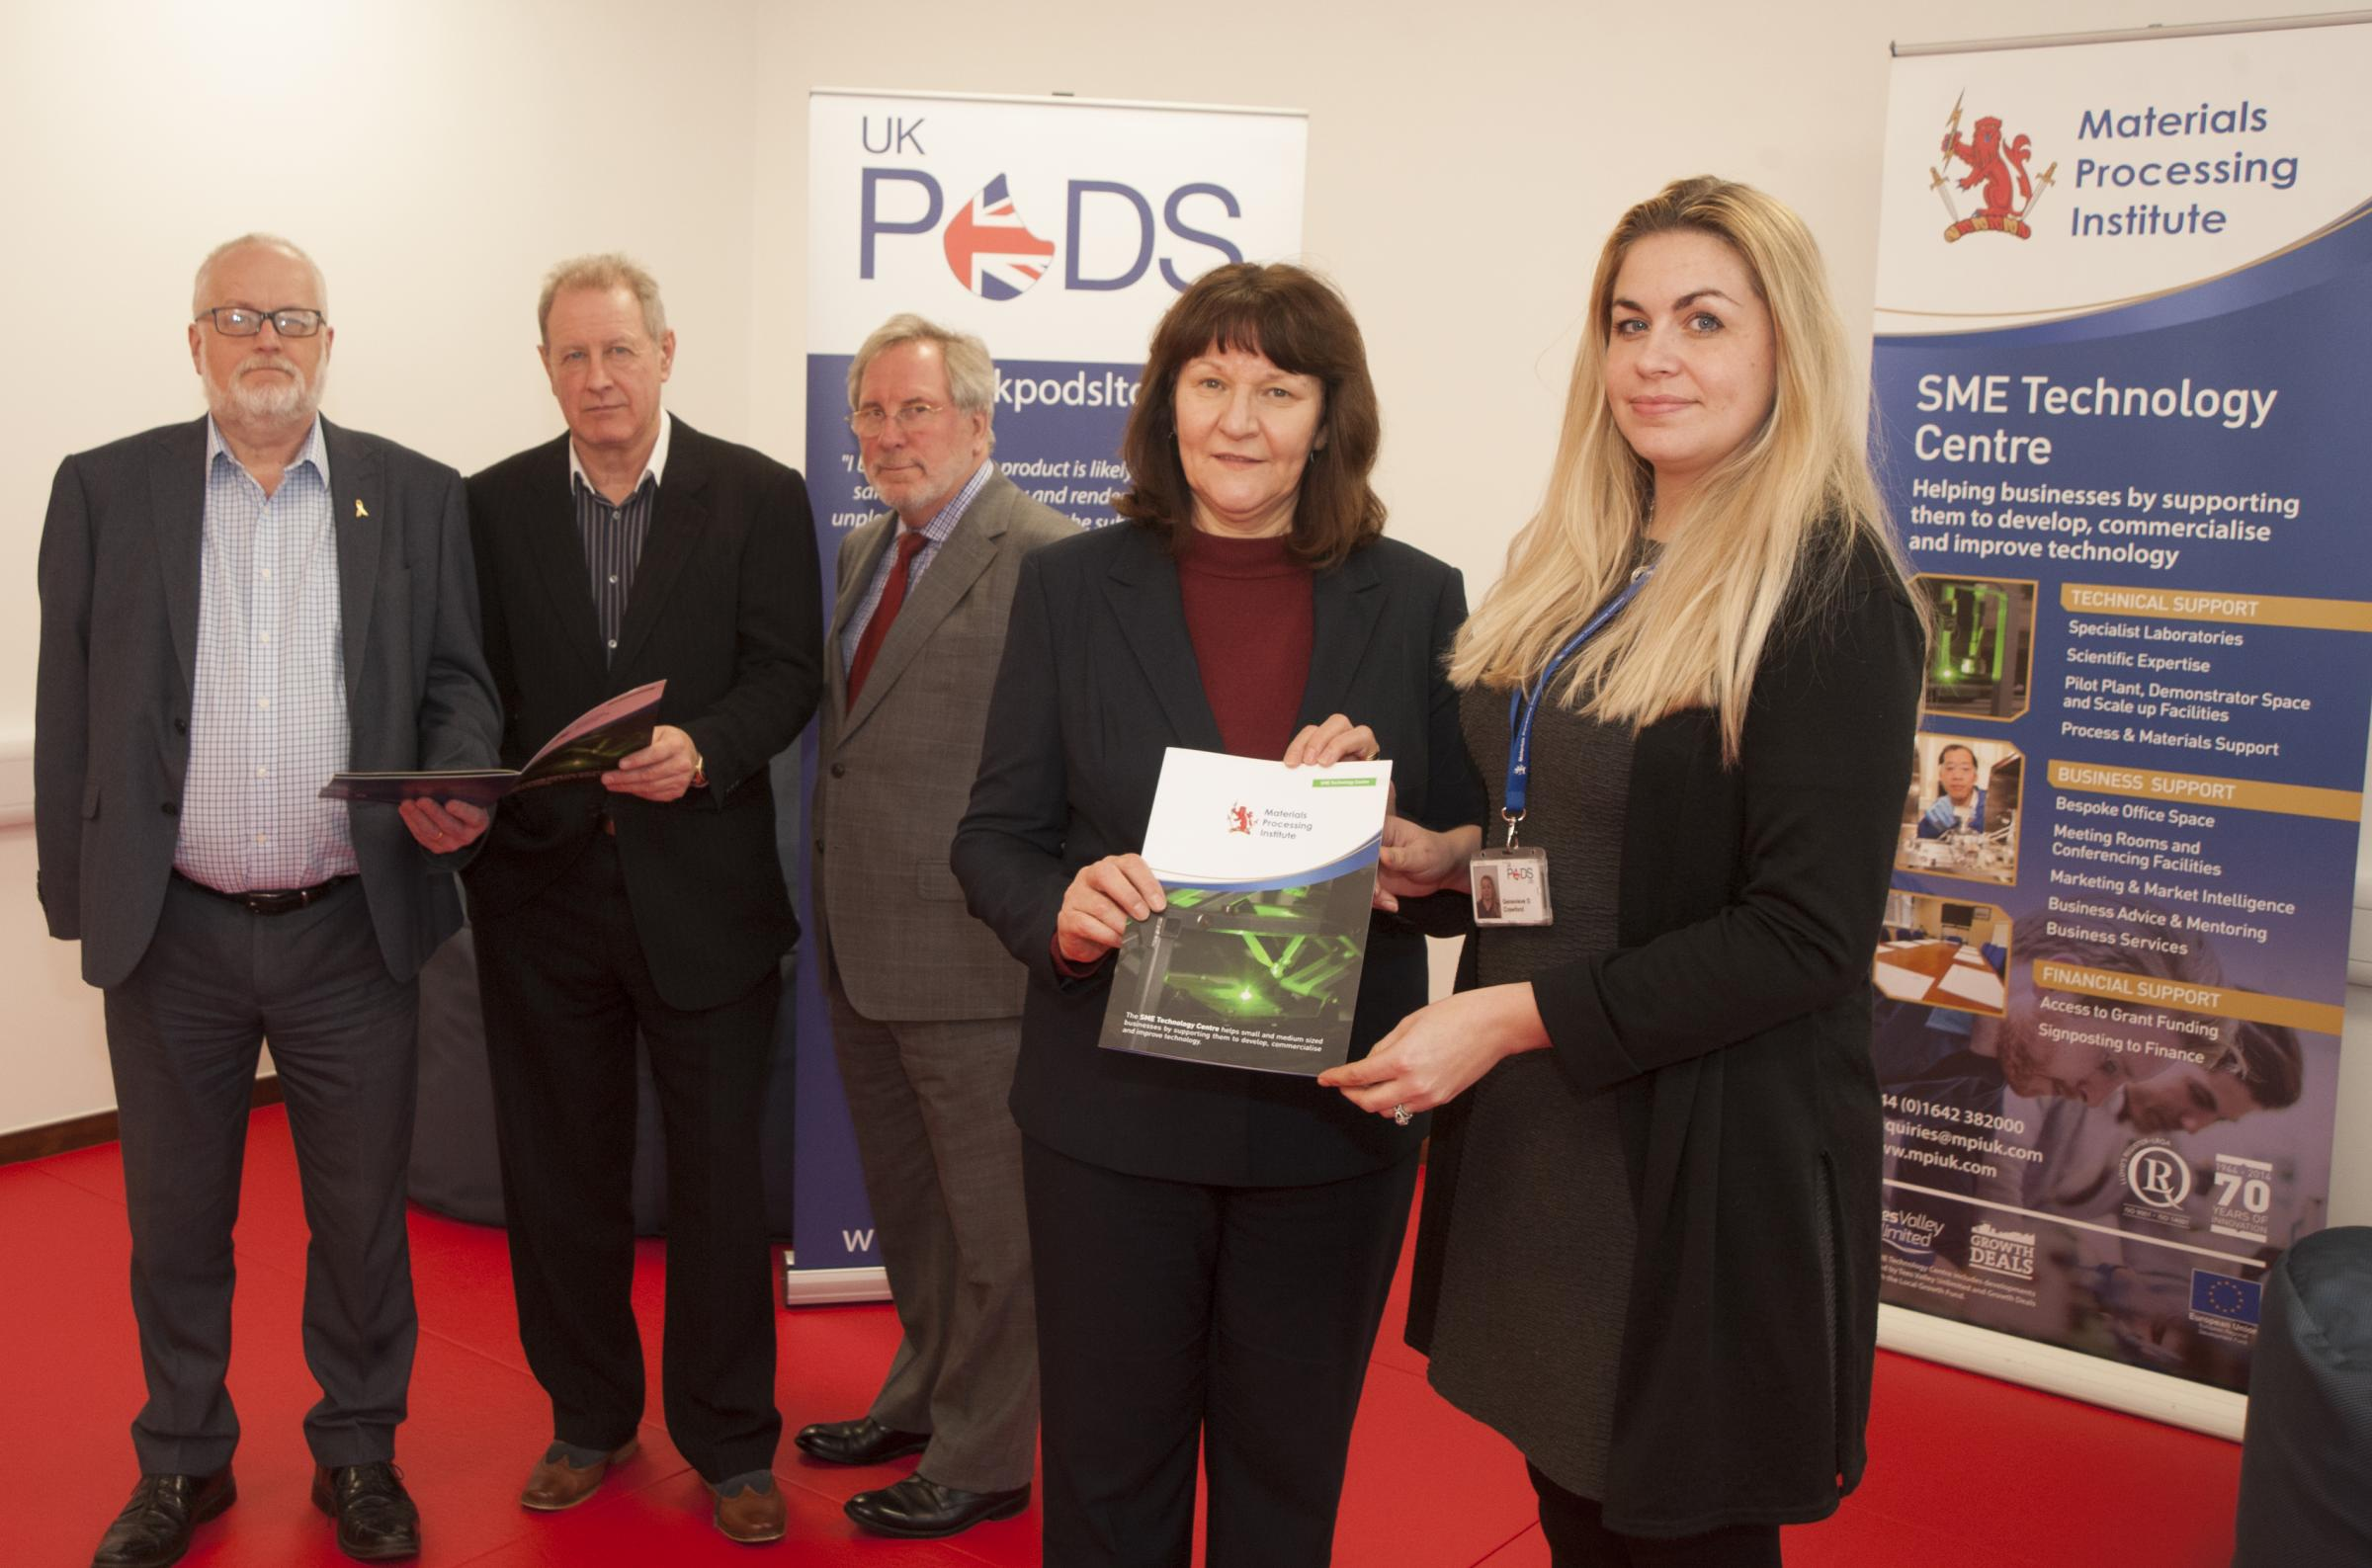 From left, Stephen Carey, Ian Swain, Paul Taylor and Carol Patton (all from the Materials Processing Institute) with Genevieve Crawford, MD of UK Pods Ltd, one of the resident businesses at the Institute